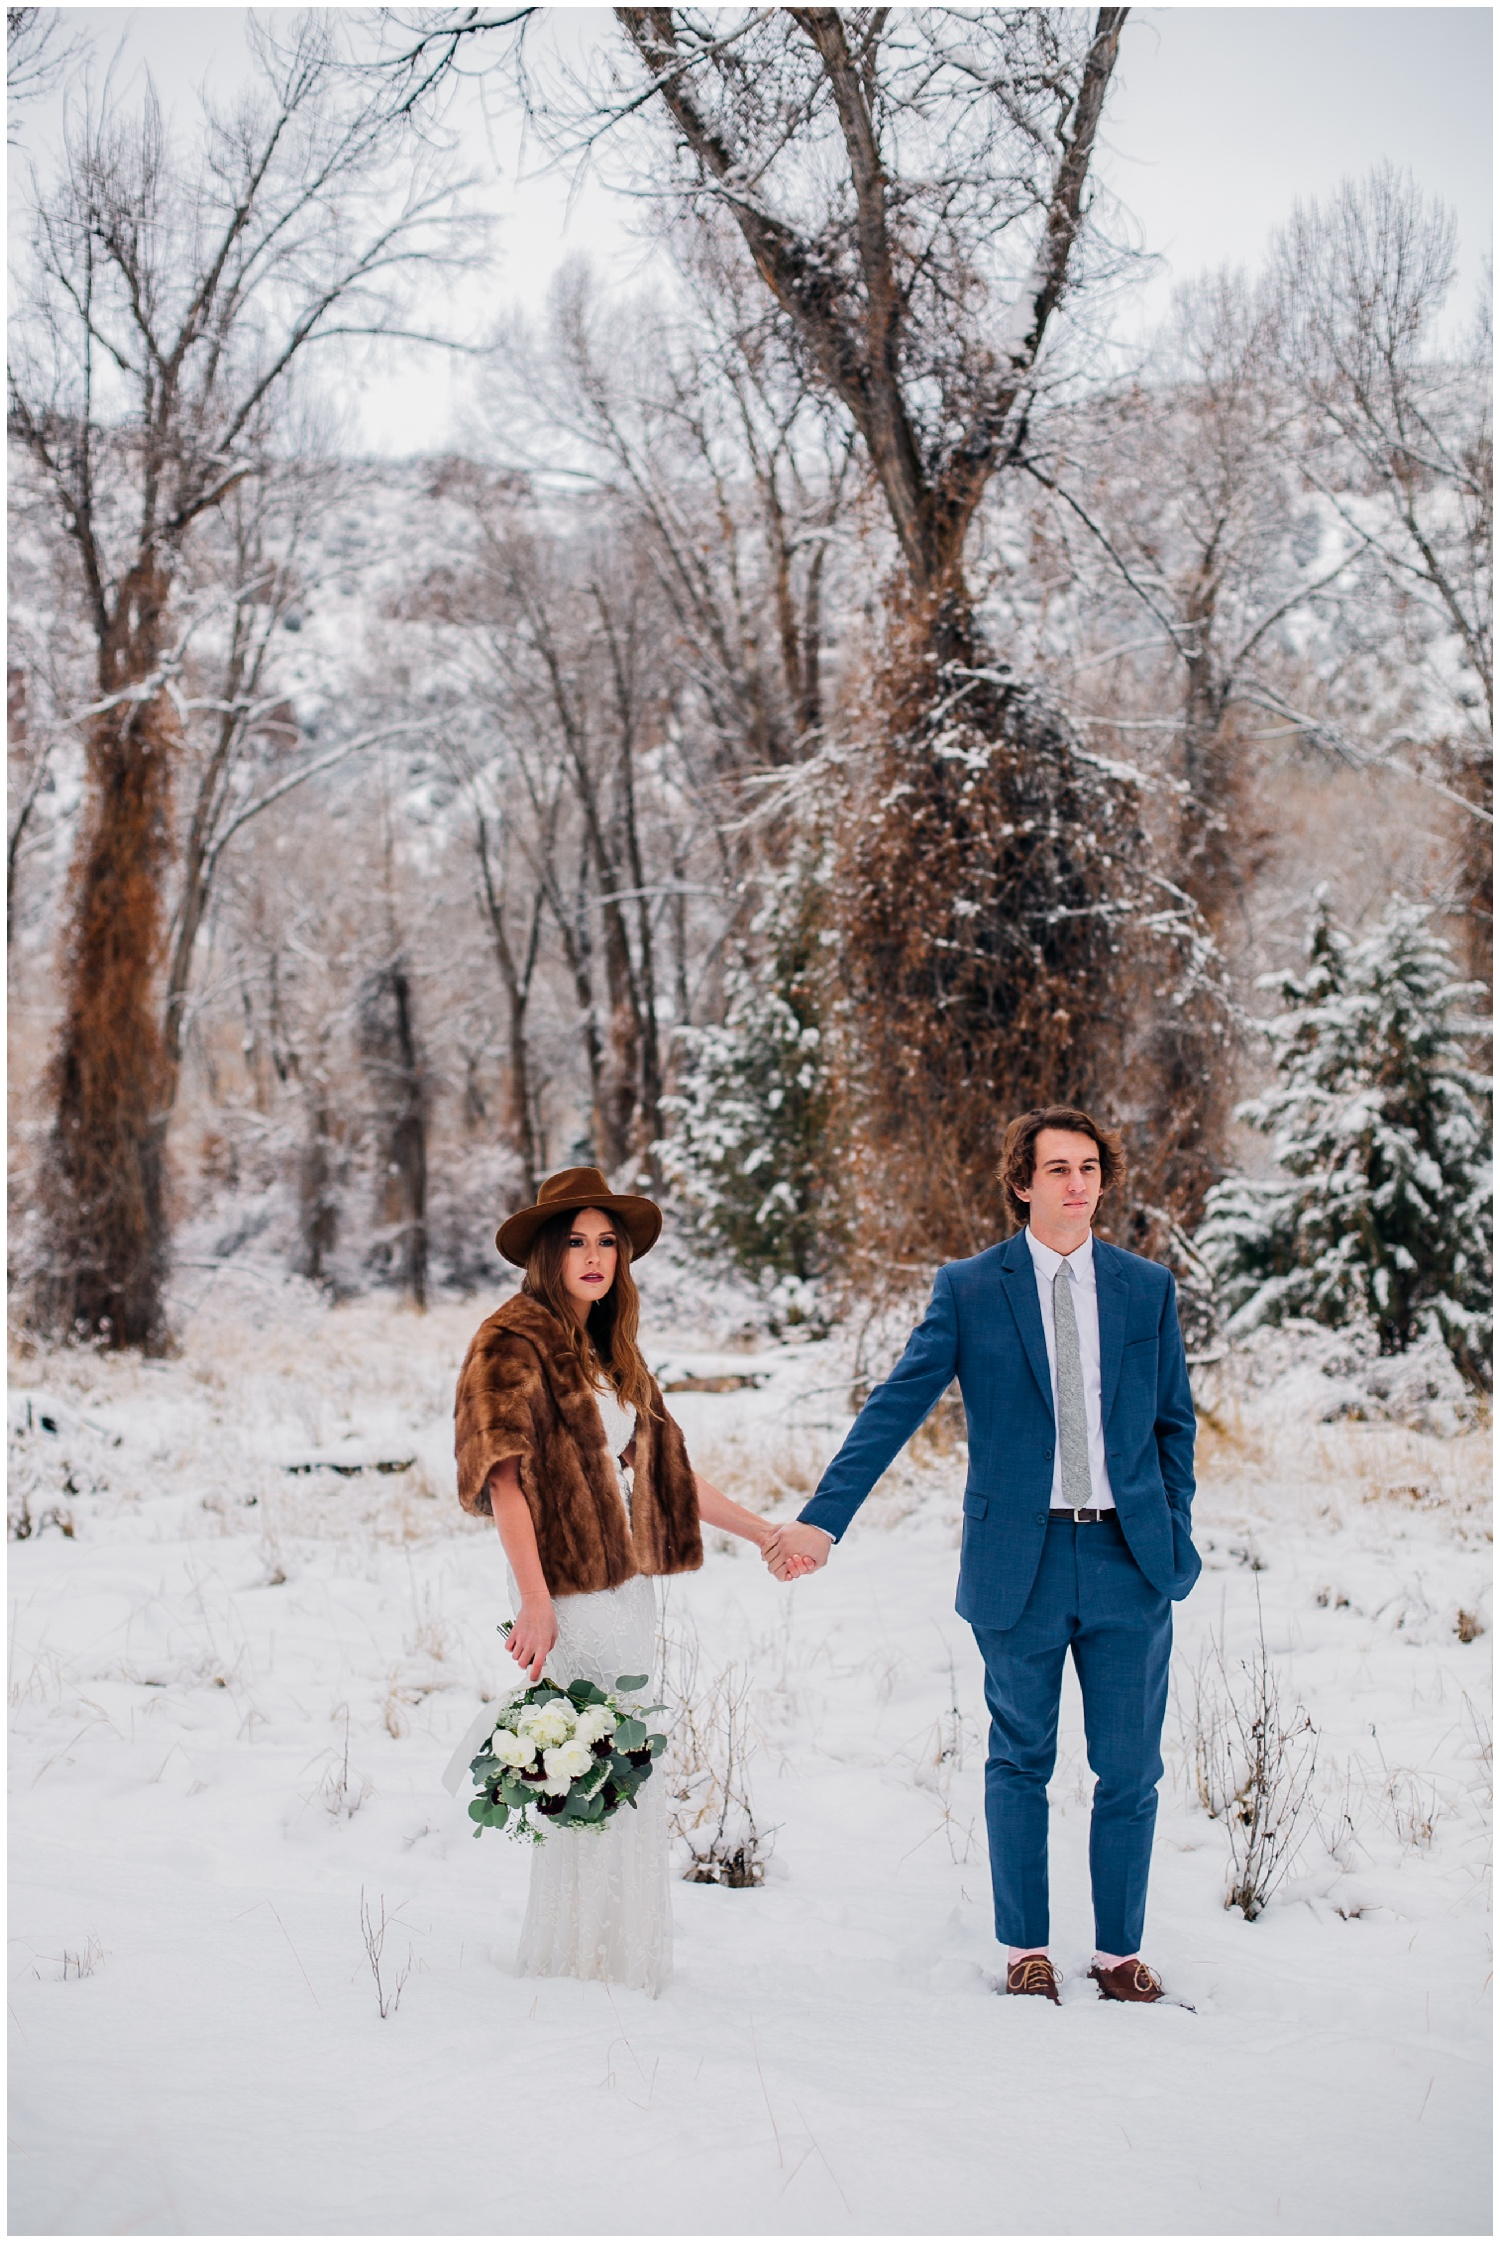 idaho+rexburg+wedding+cheyenne+wyoming+colorado+rocky+mountain+national+park+estes+park+engagement+wedding_1824.jpg